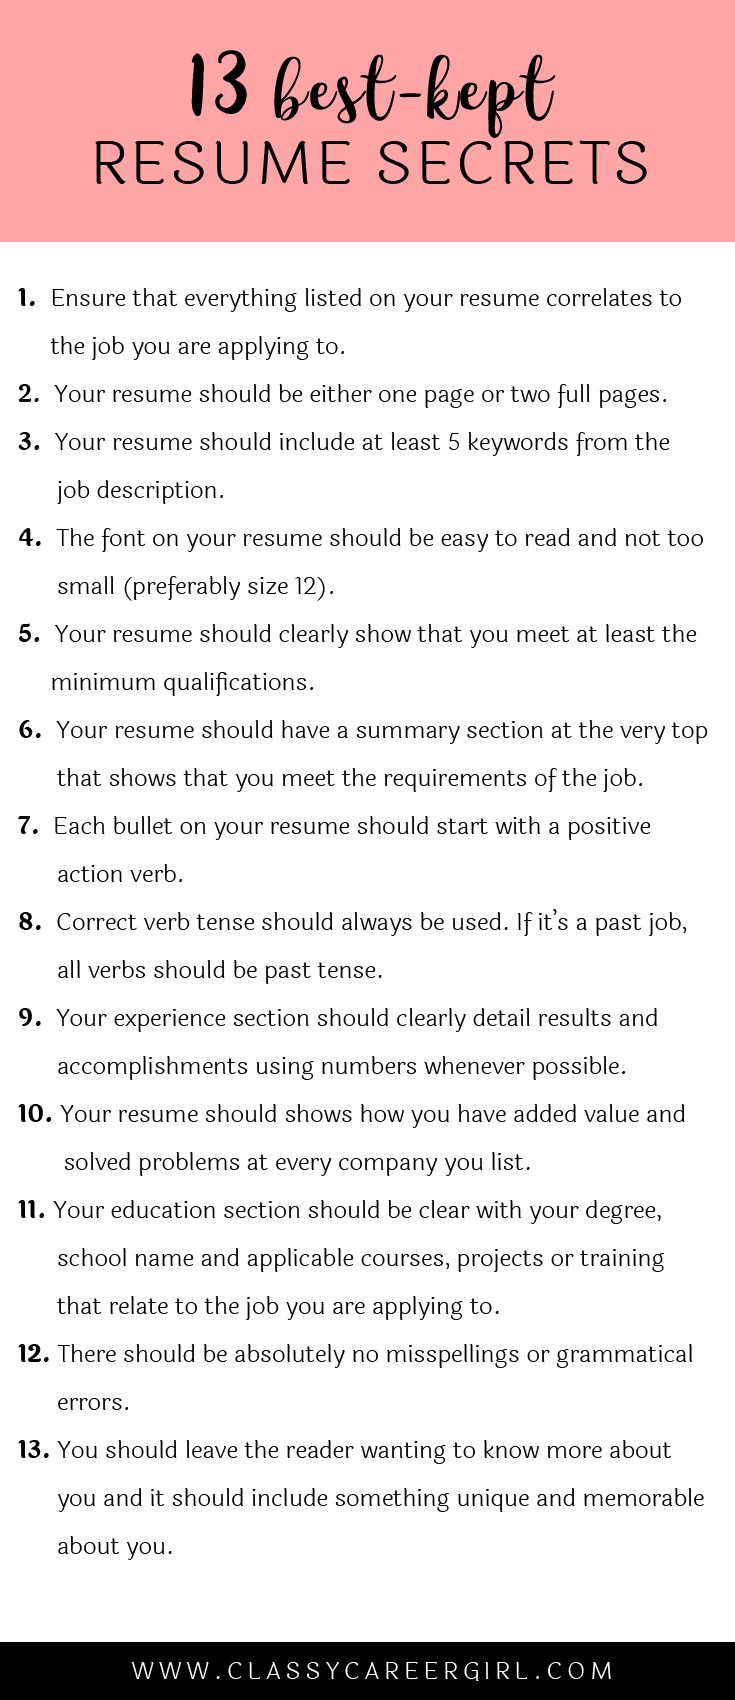 Opposenewapstandardsus  Stunning  Ideas About Resume On Pinterest  Cv Format Resume Cv And  With Glamorous Some Hiring Managers Will Toss Your Resume Out If You Dont Know These  With Lovely Free Resumes To Download Also Agile Business Analyst Resume In Addition Restaurant Manager Resume Objective And Linkedin Profile On Resume As Well As Email For Sending Resume Additionally Resume With No Experience Examples From Pinterestcom With Opposenewapstandardsus  Glamorous  Ideas About Resume On Pinterest  Cv Format Resume Cv And  With Lovely Some Hiring Managers Will Toss Your Resume Out If You Dont Know These  And Stunning Free Resumes To Download Also Agile Business Analyst Resume In Addition Restaurant Manager Resume Objective From Pinterestcom